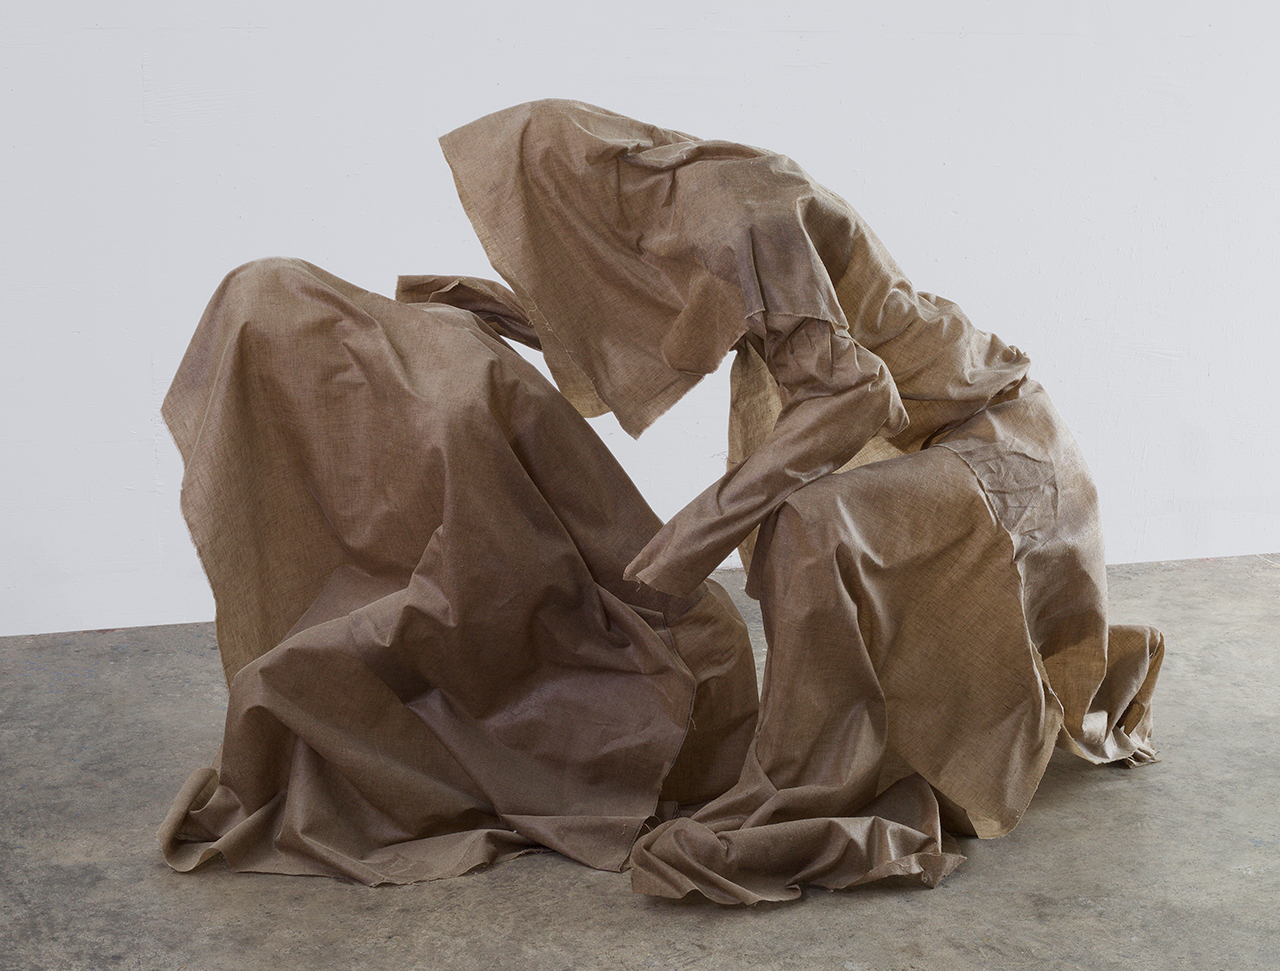 """Robert Morris, """"Maybe They Won't Find Out"""" (2014–15), linen and resin, 46 x 32 x 72 inches"""